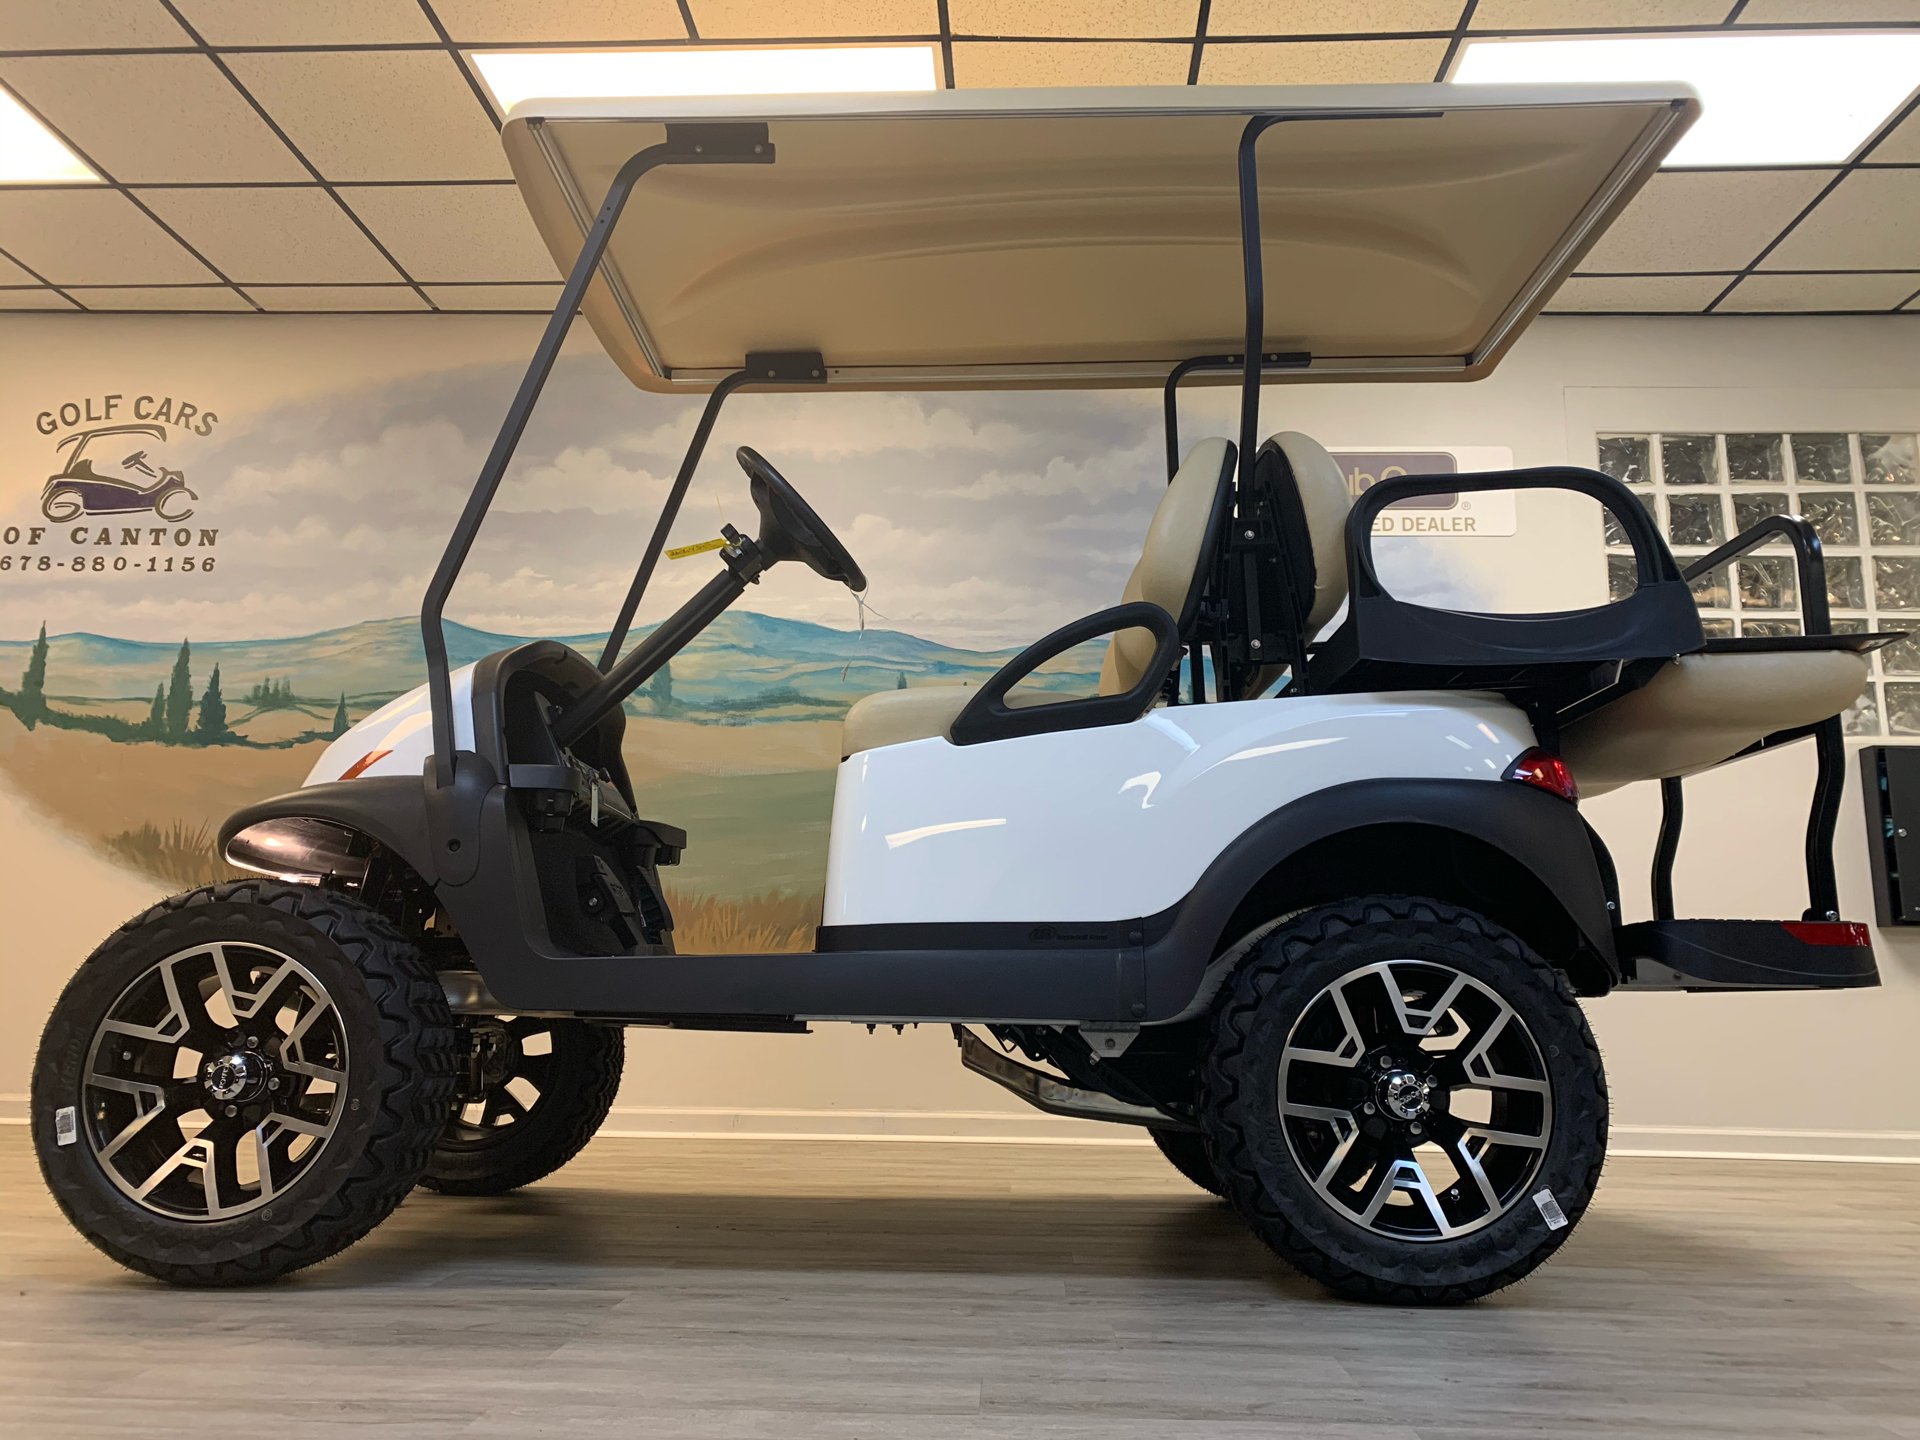 2021 Club Car V4L Gas in Canton, Georgia - Photo 15